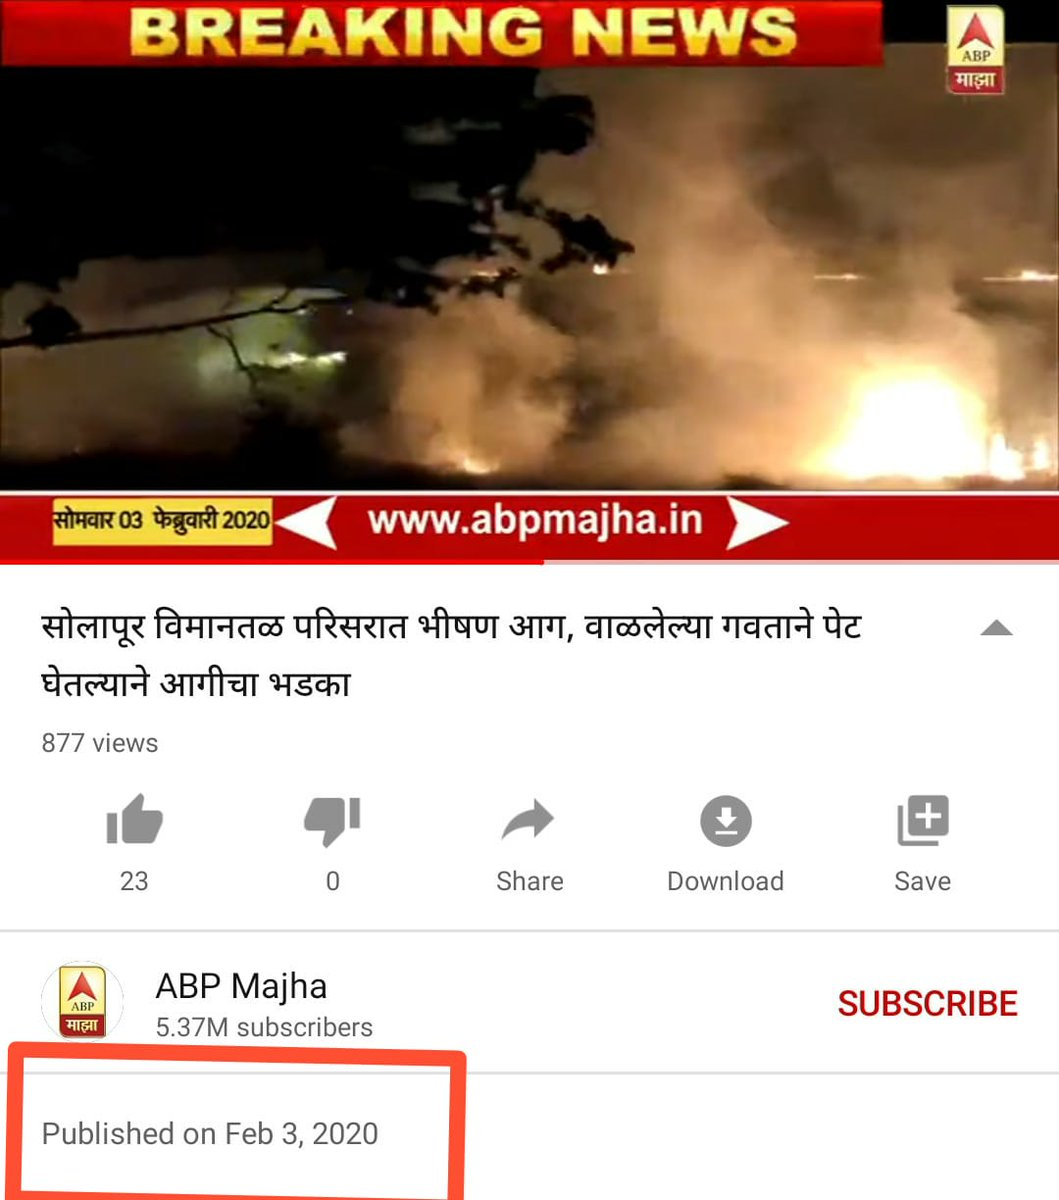 """""""Won't Spare those who are spreading fake news""""   But..  Yesterday night TV9 Marathi played and old video of 3rd Feb claiming it to be of 5th April.  Let's see if some action is taken or focus is still on his PR activities. pic.twitter.com/DN7u3a19R6"""